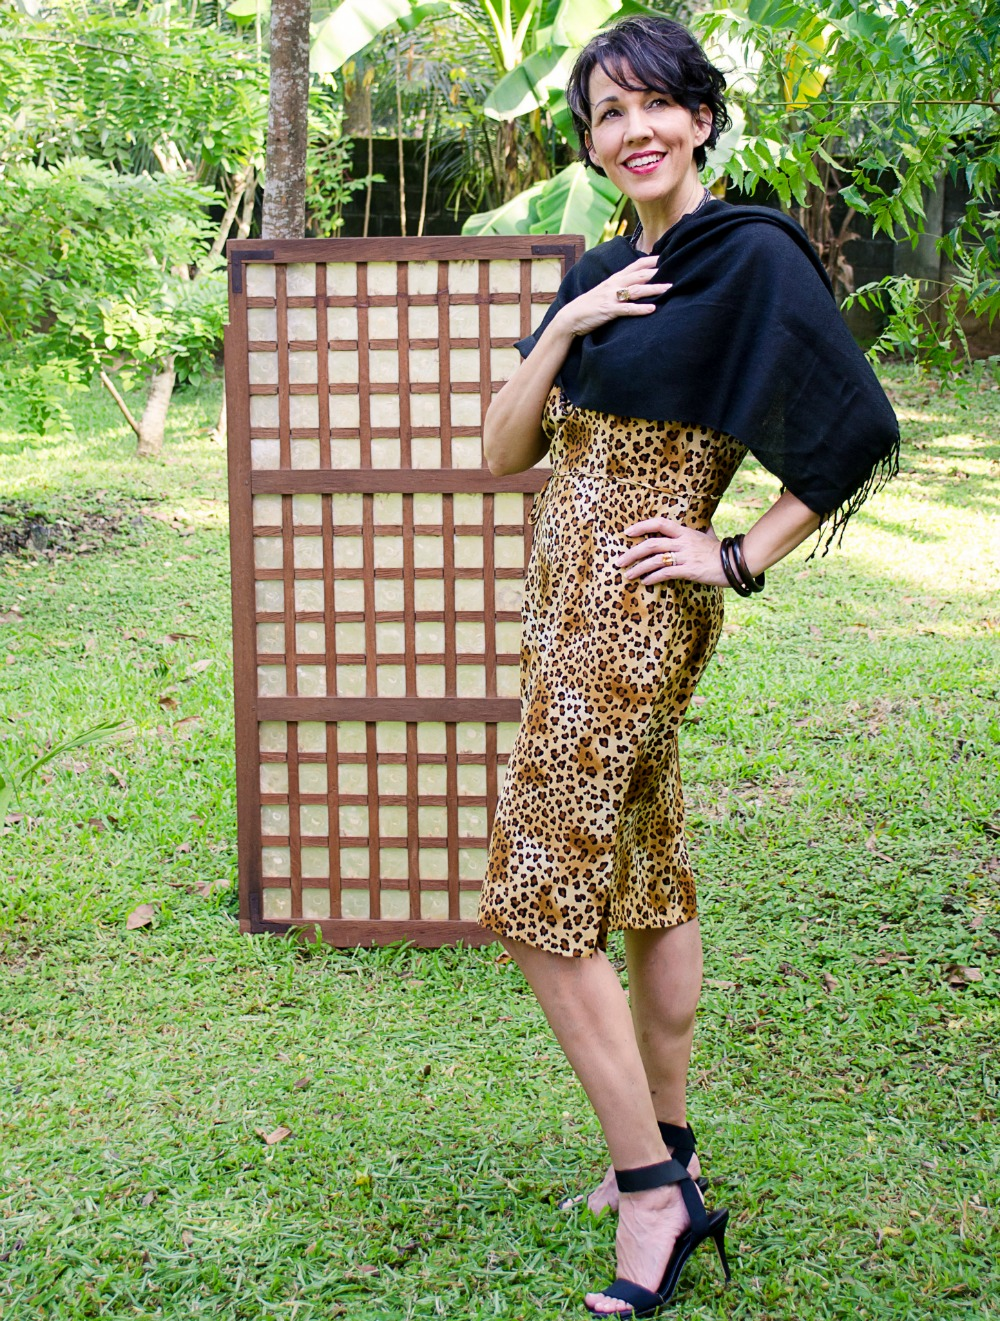 Shellie Bowdoin from the fabjourney.com in animal print